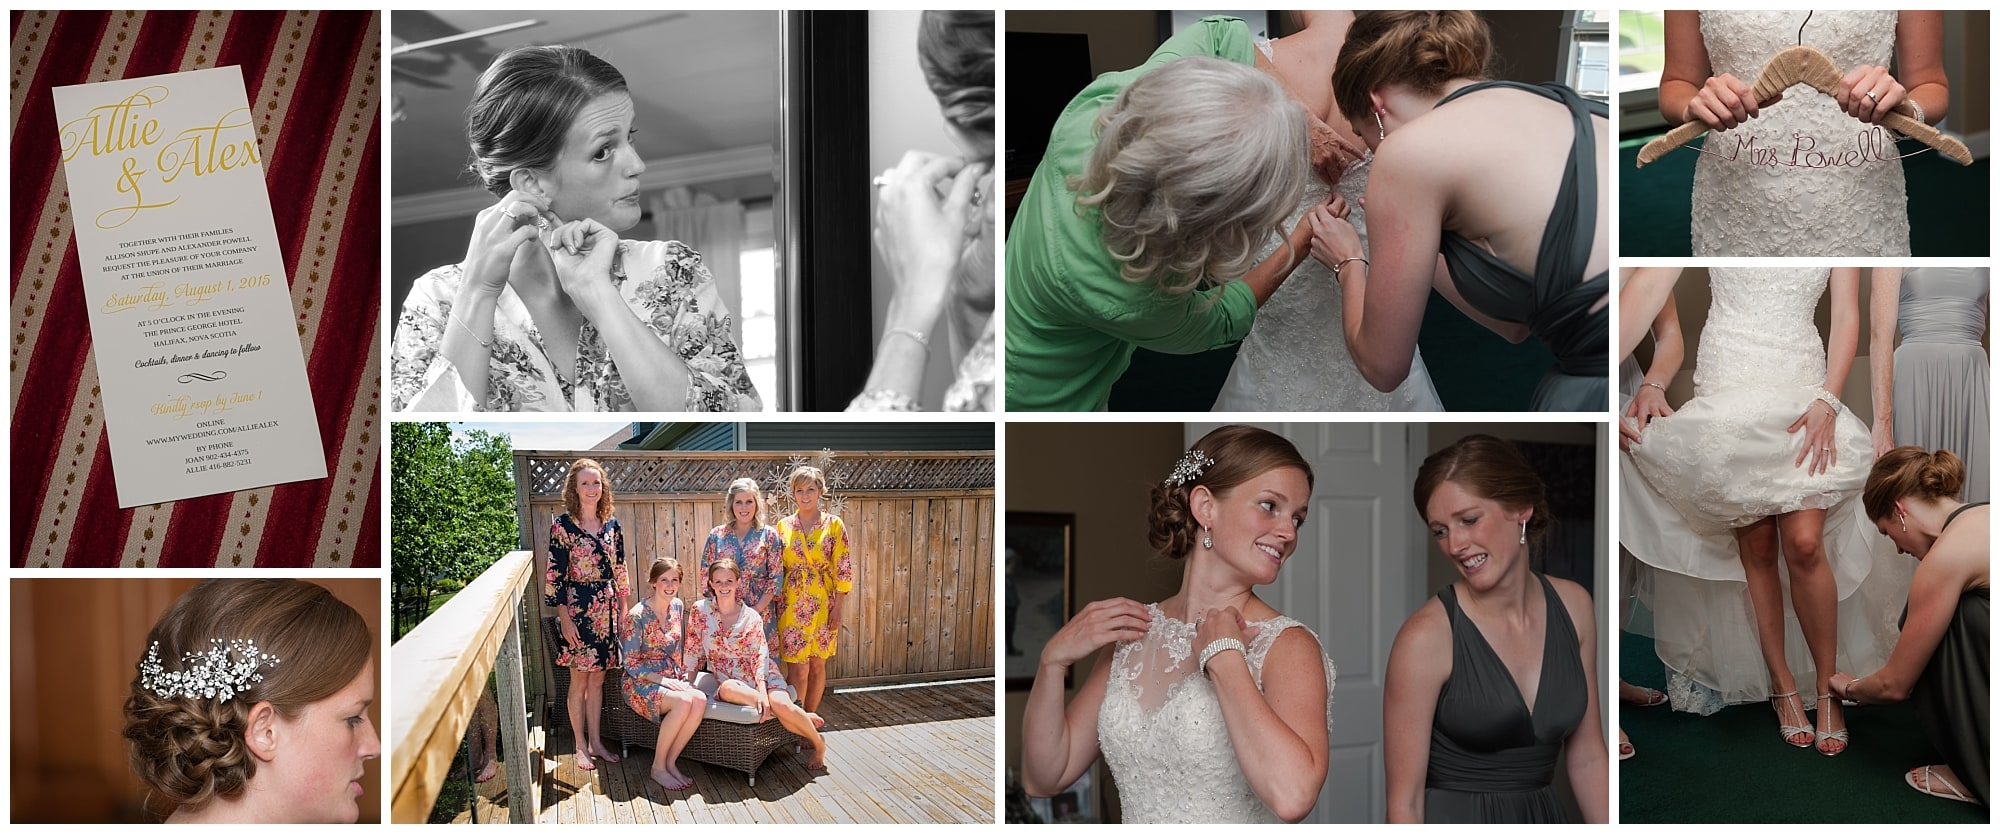 A bride prepares for her wedding during bridal prep, getting into her gown and putting her earrings in at her parent's home in Cole Harbour.